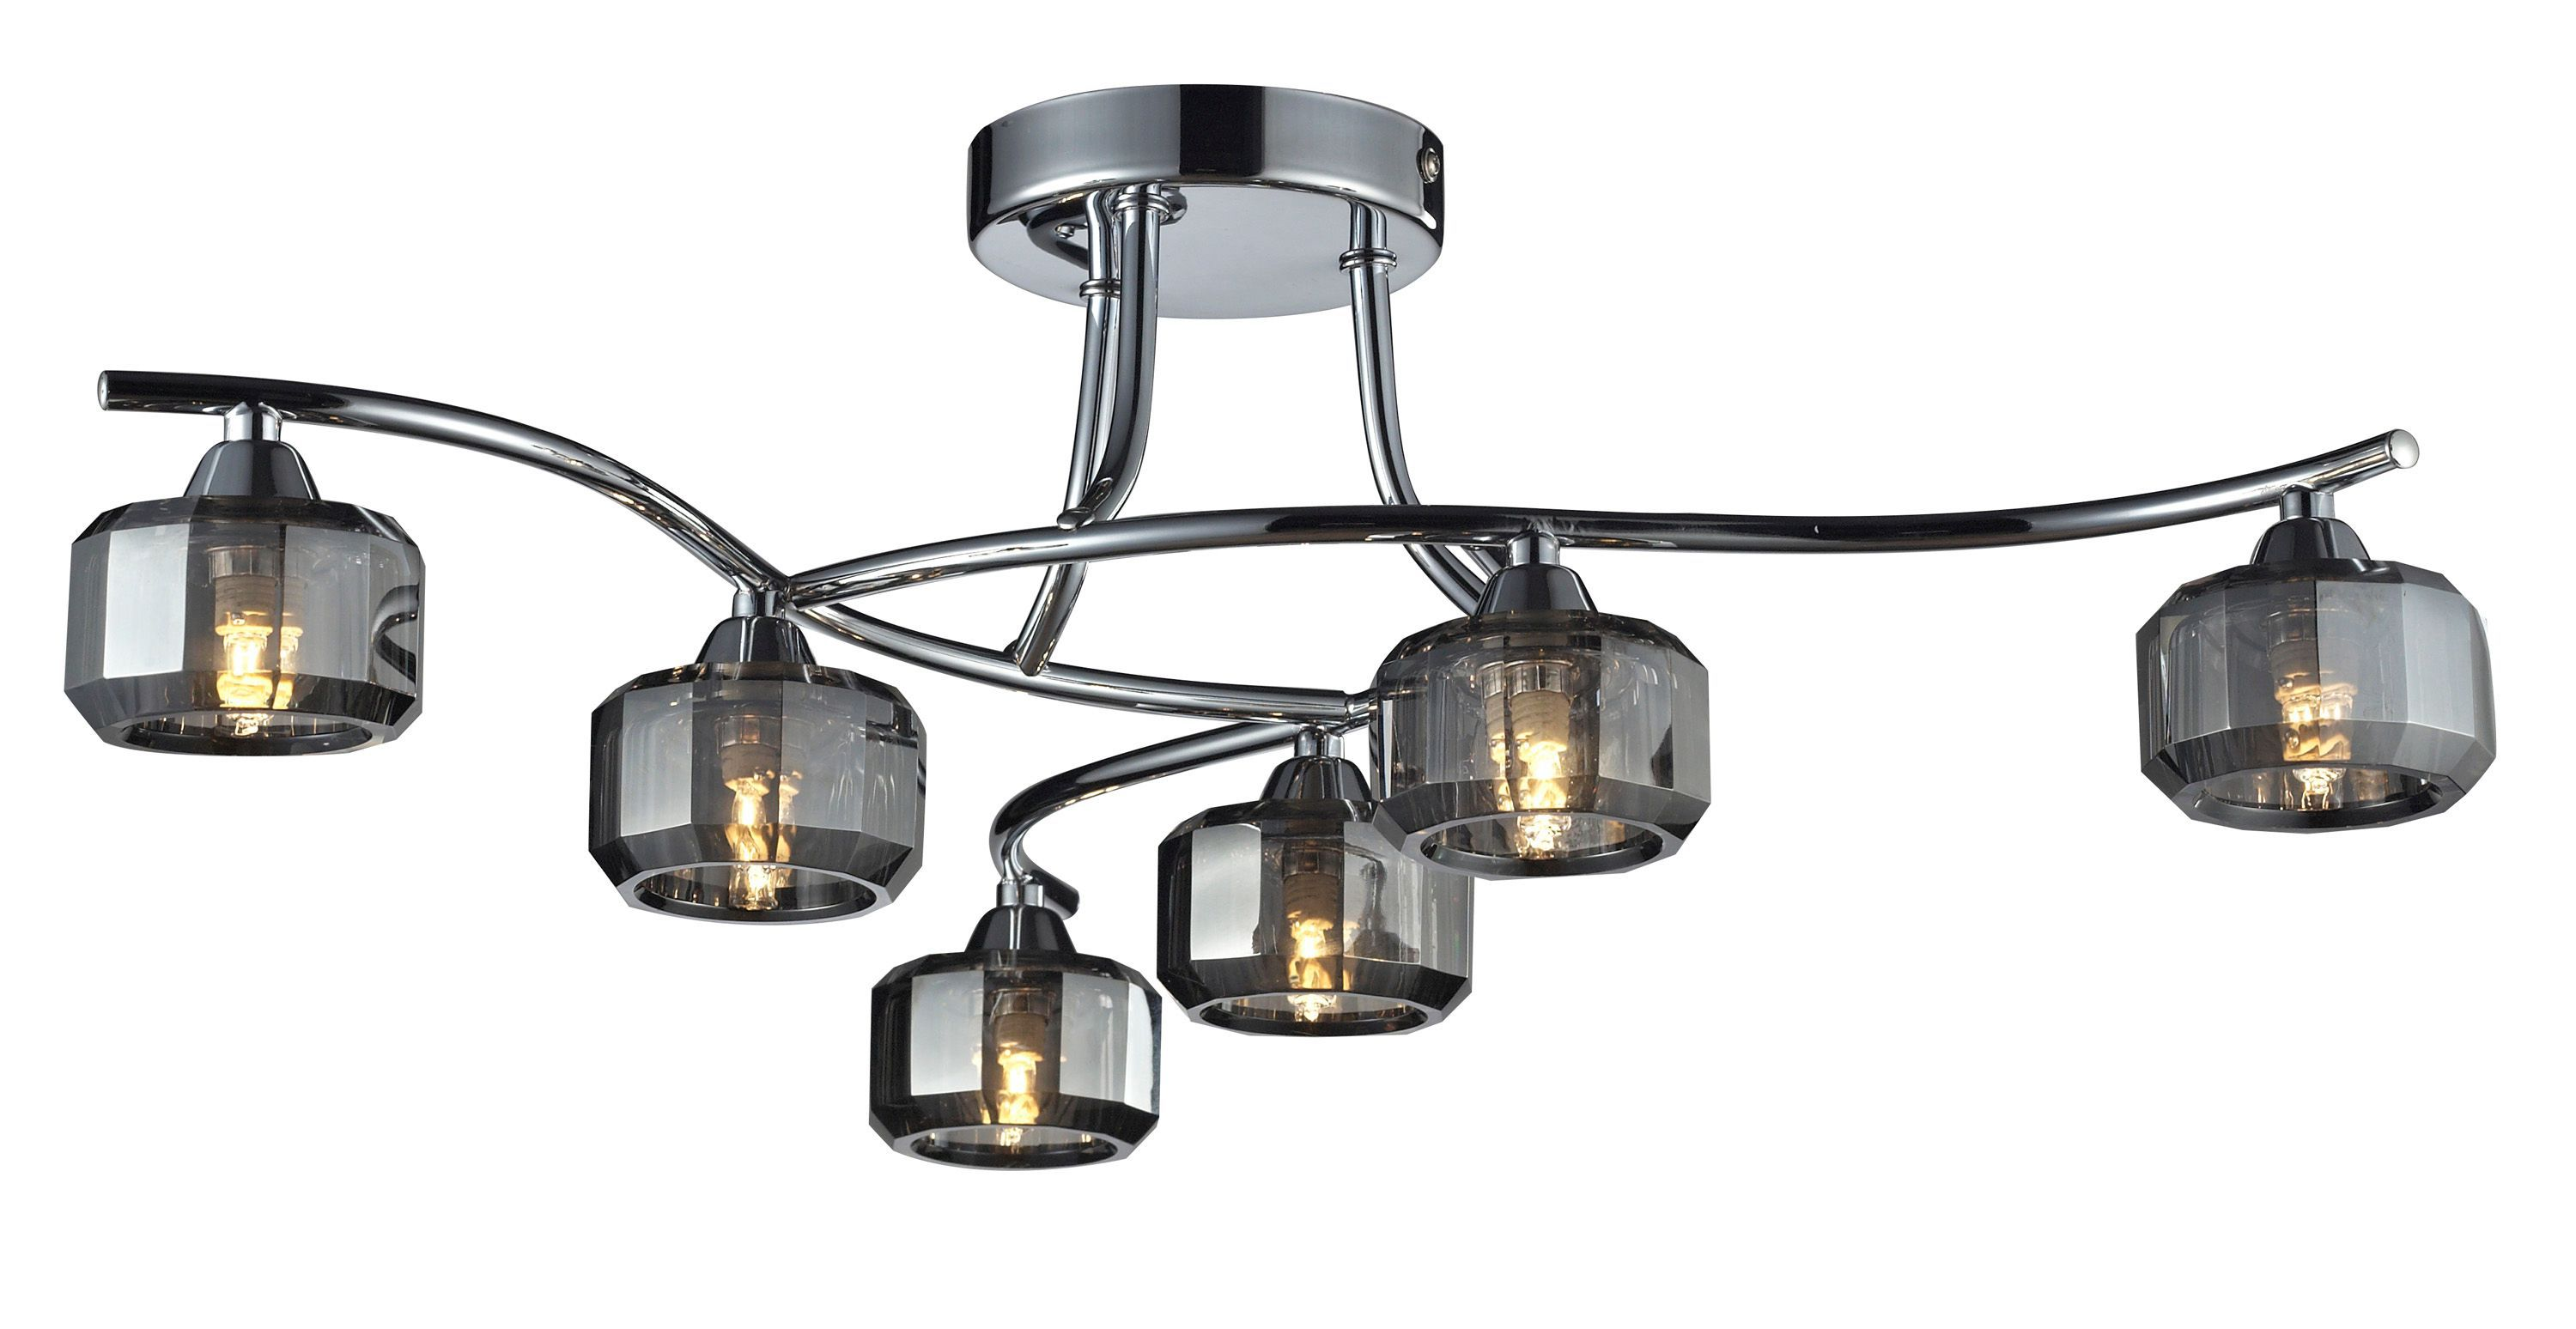 Outdoor Ceiling Lights B And Q : Allyn ridge grey smoked chrome effect lamp ceiling light